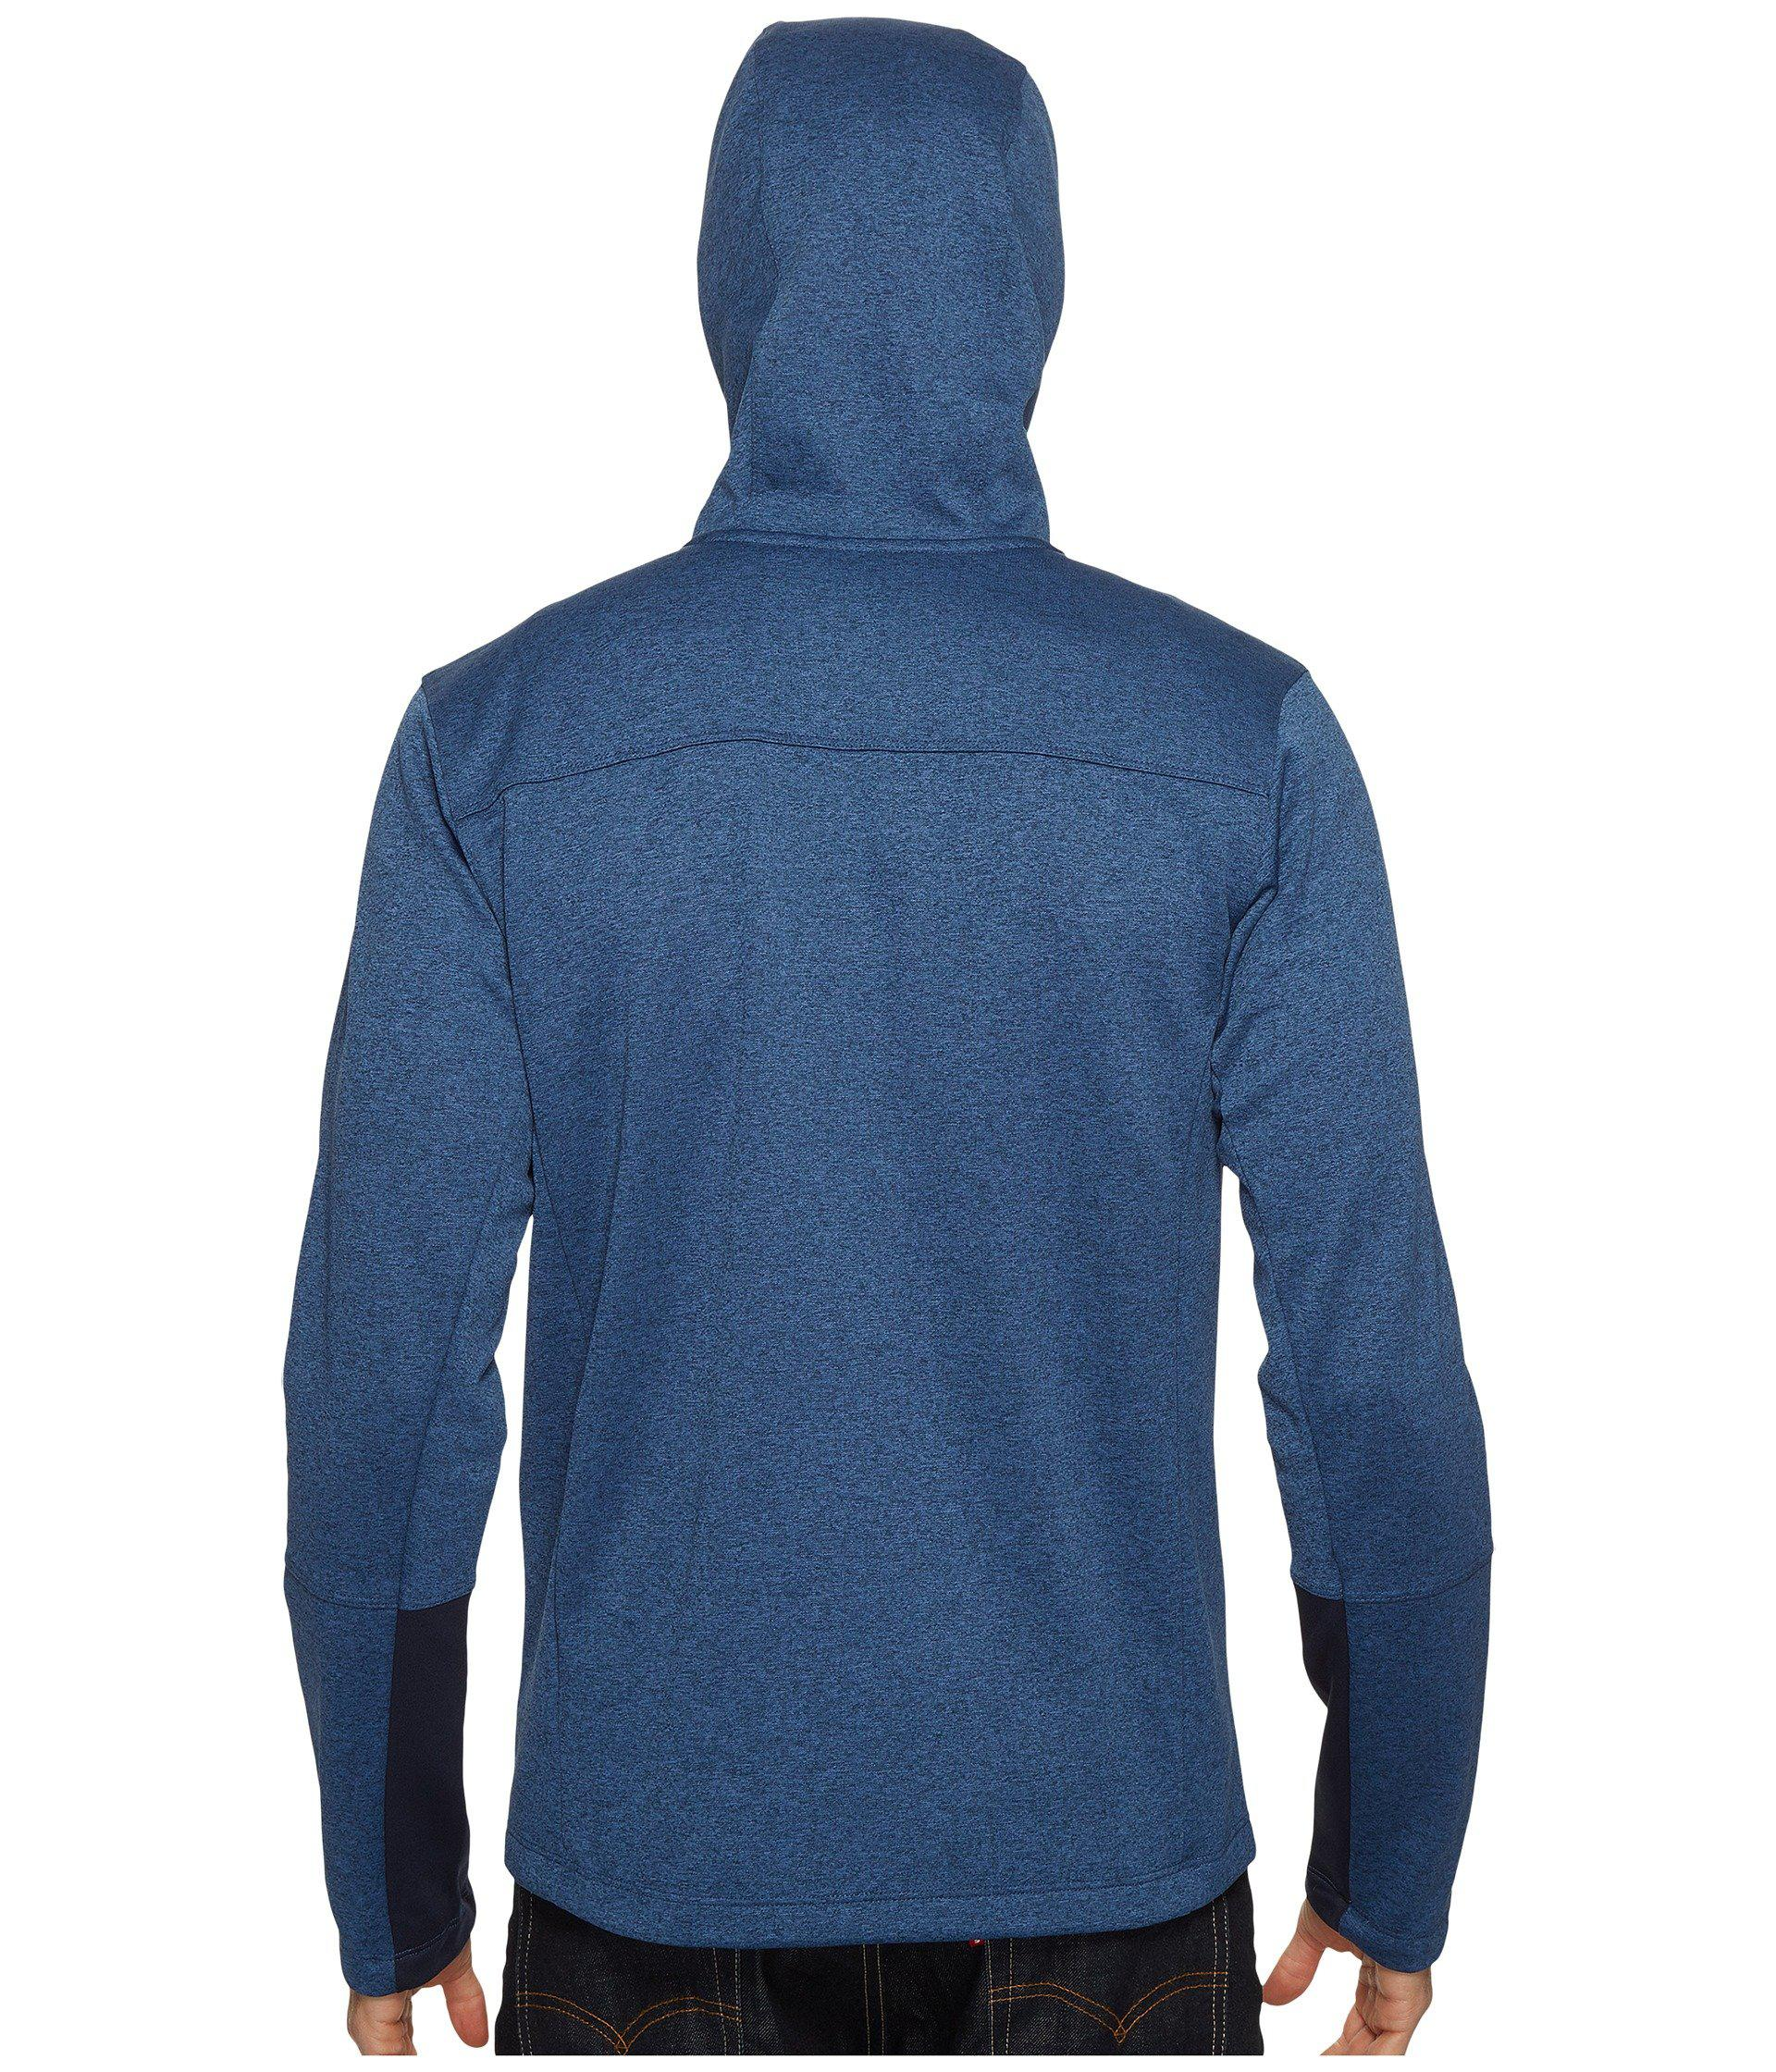 6a829736aa Lyst - The North Face Canyonlands Hoodie (fig Heather) Men s ...